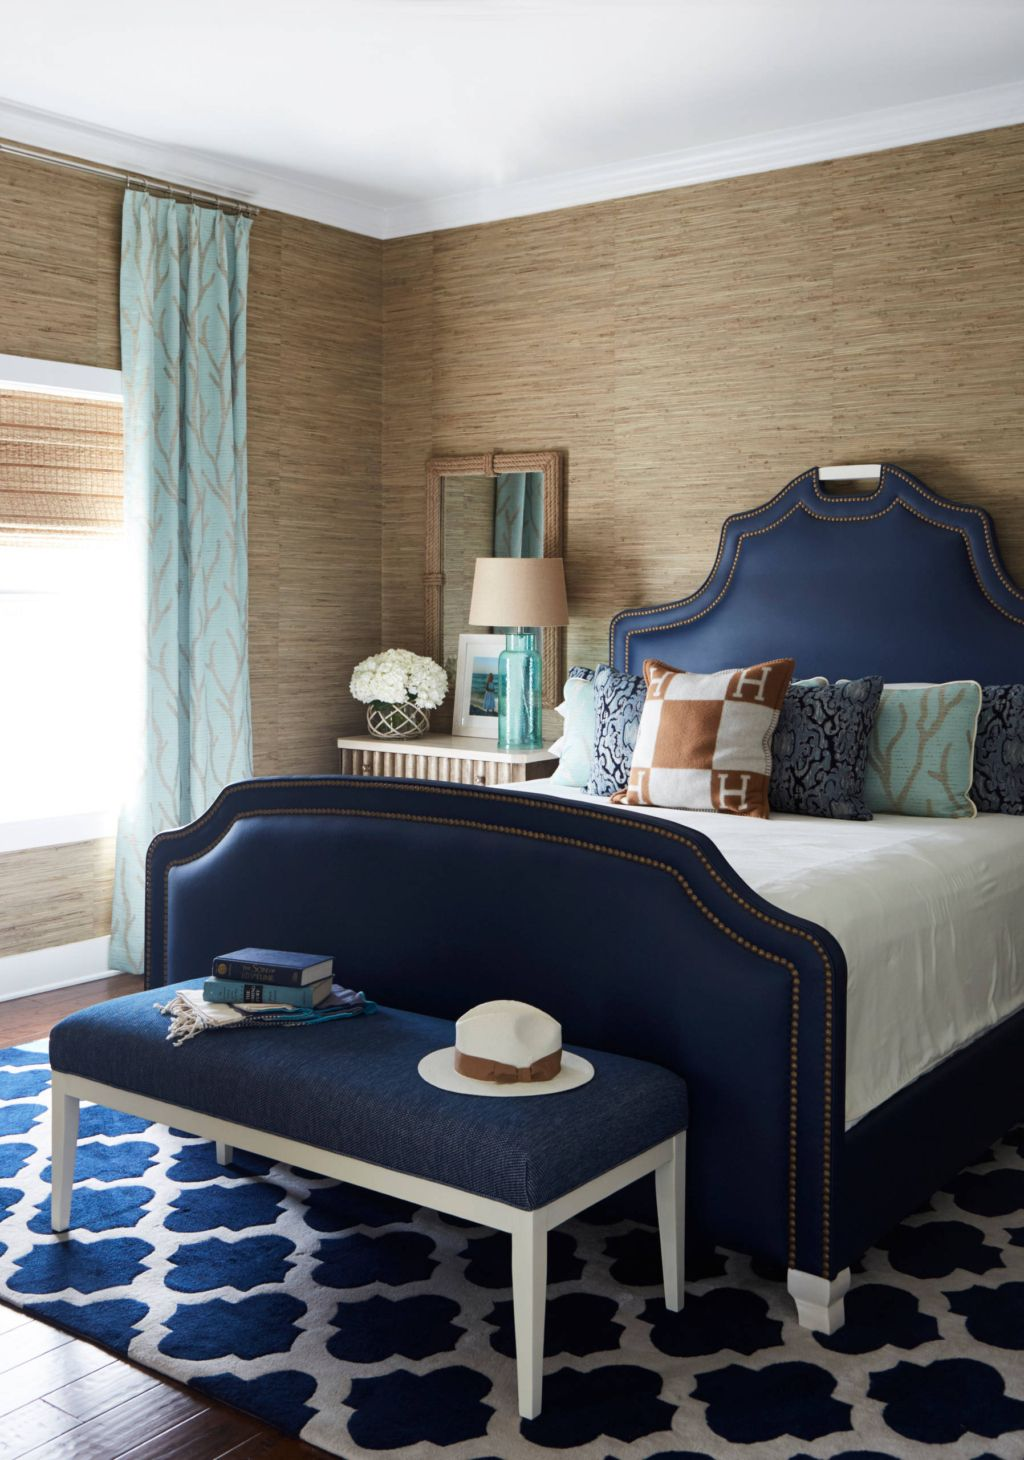 Interior Designer Kristin Drohan Owner And Ceo Of Collection An Atlanta Based Design Firm Furniture Company Pulled From Her